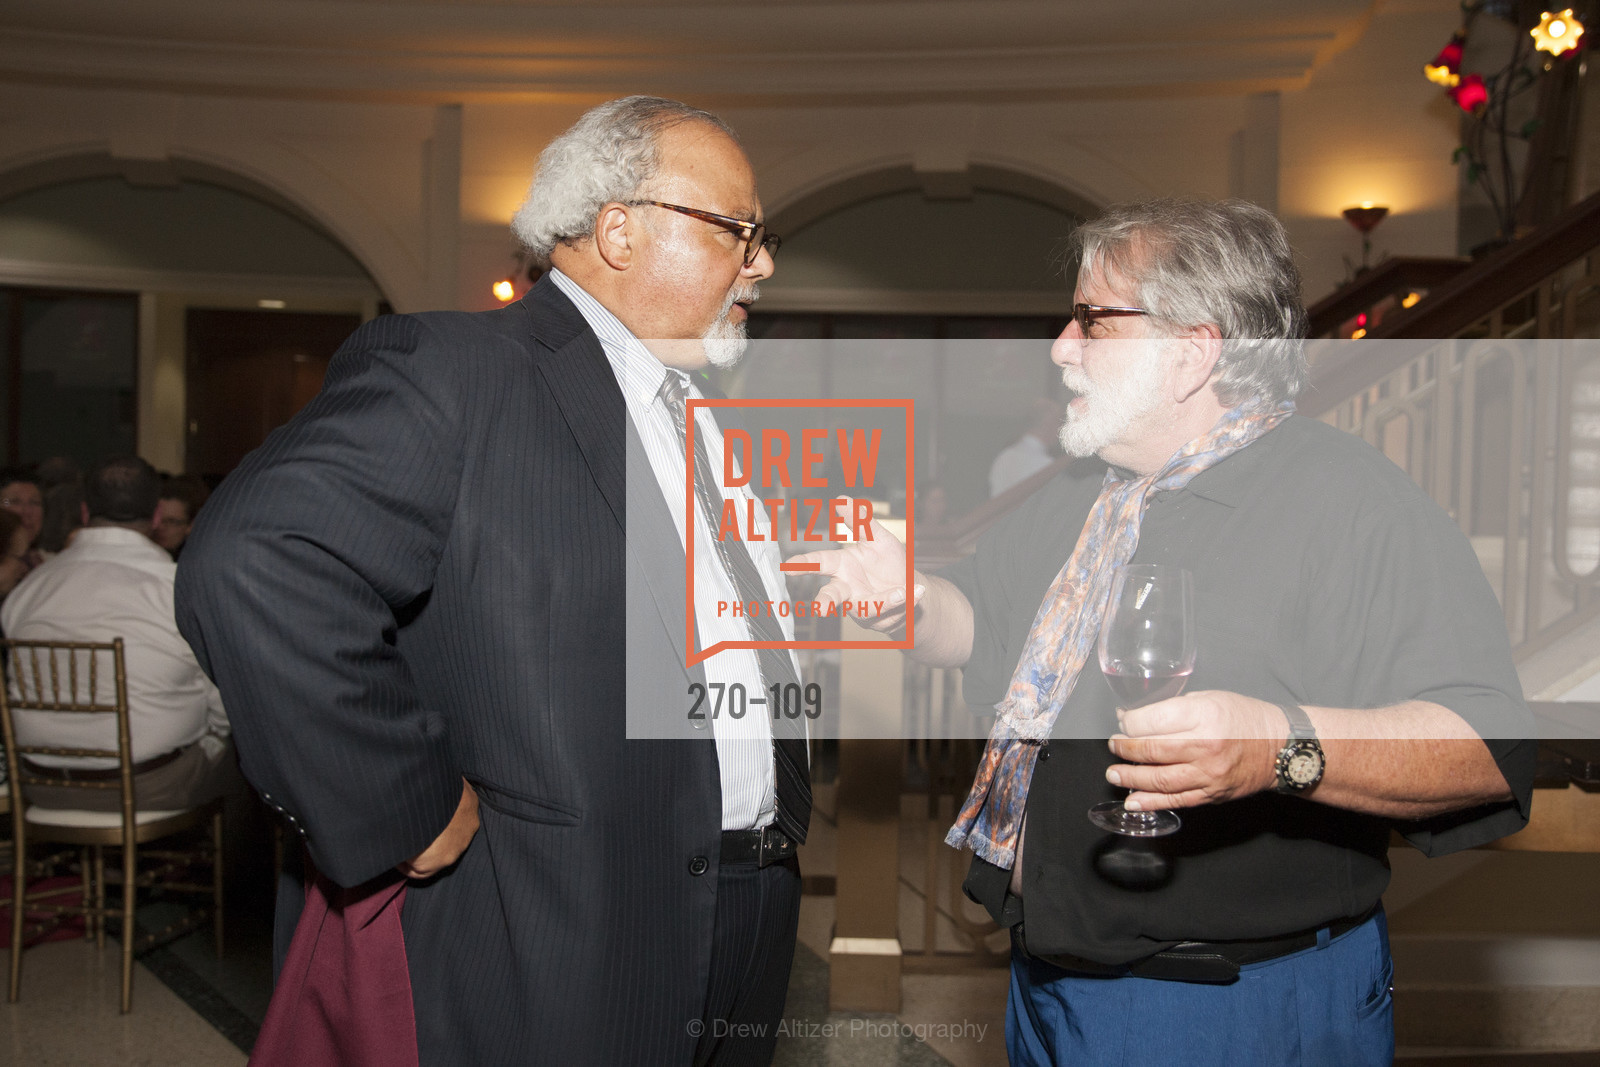 Eric Goosley, David Katzenstein, PANGAEA GLOBAL HEALTH Leadership Dinner at Rotunda in Oakland, The Rotunda. Oakland, May 11th, 2015,Drew Altizer, Drew Altizer Photography, full-service agency, private events, San Francisco photographer, photographer california